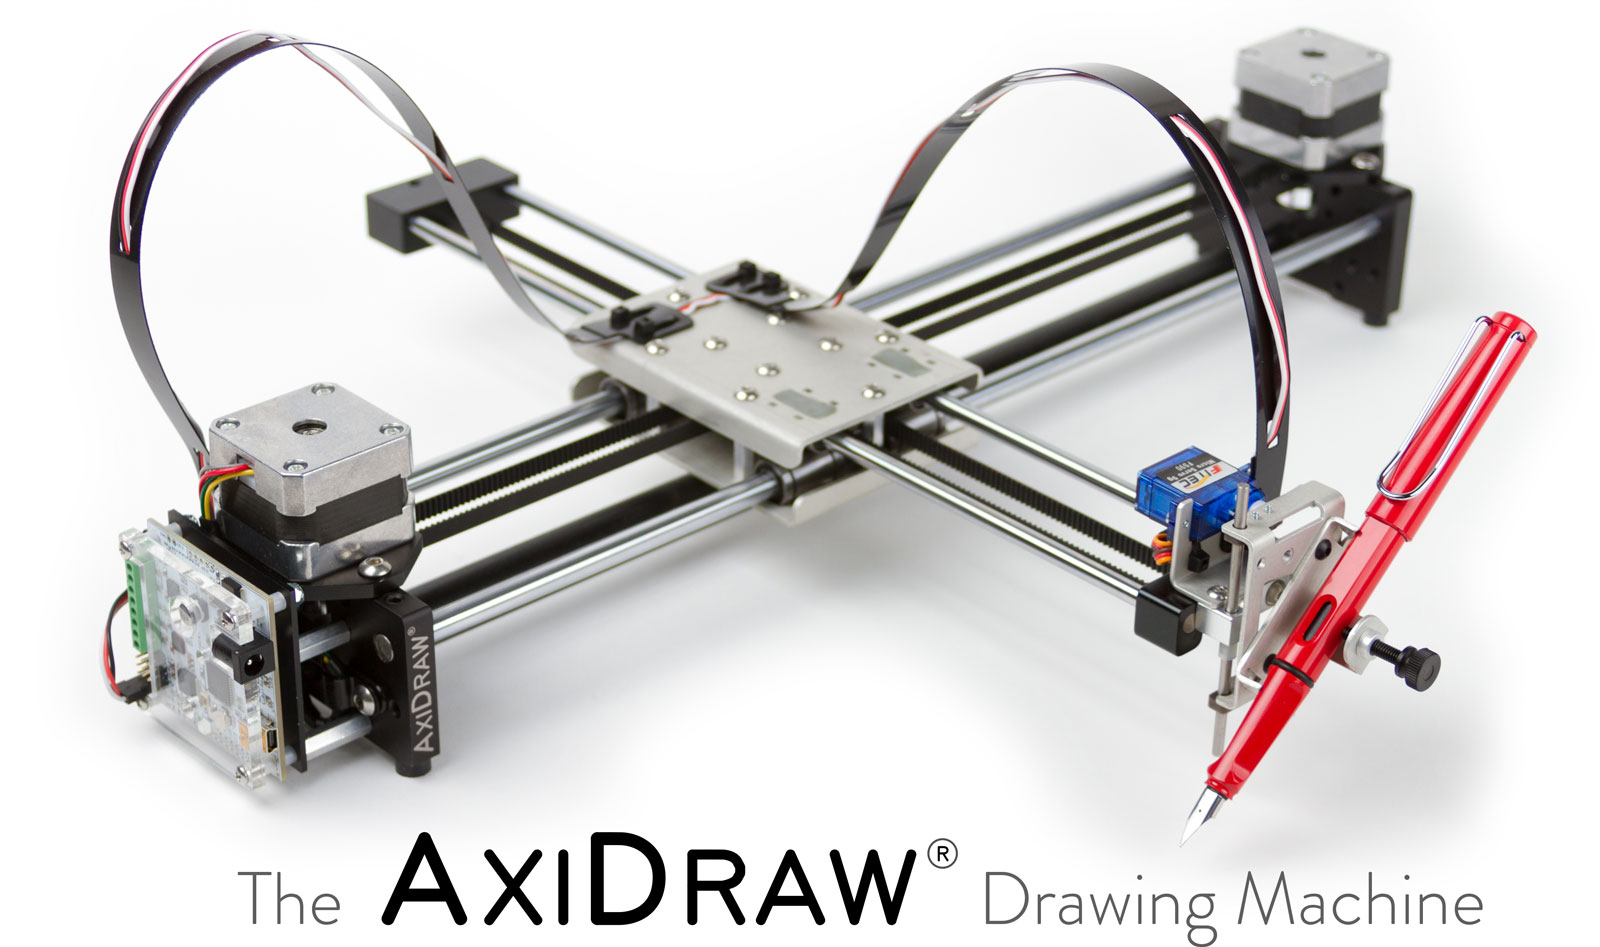 The AxiDraw Drawing Machine